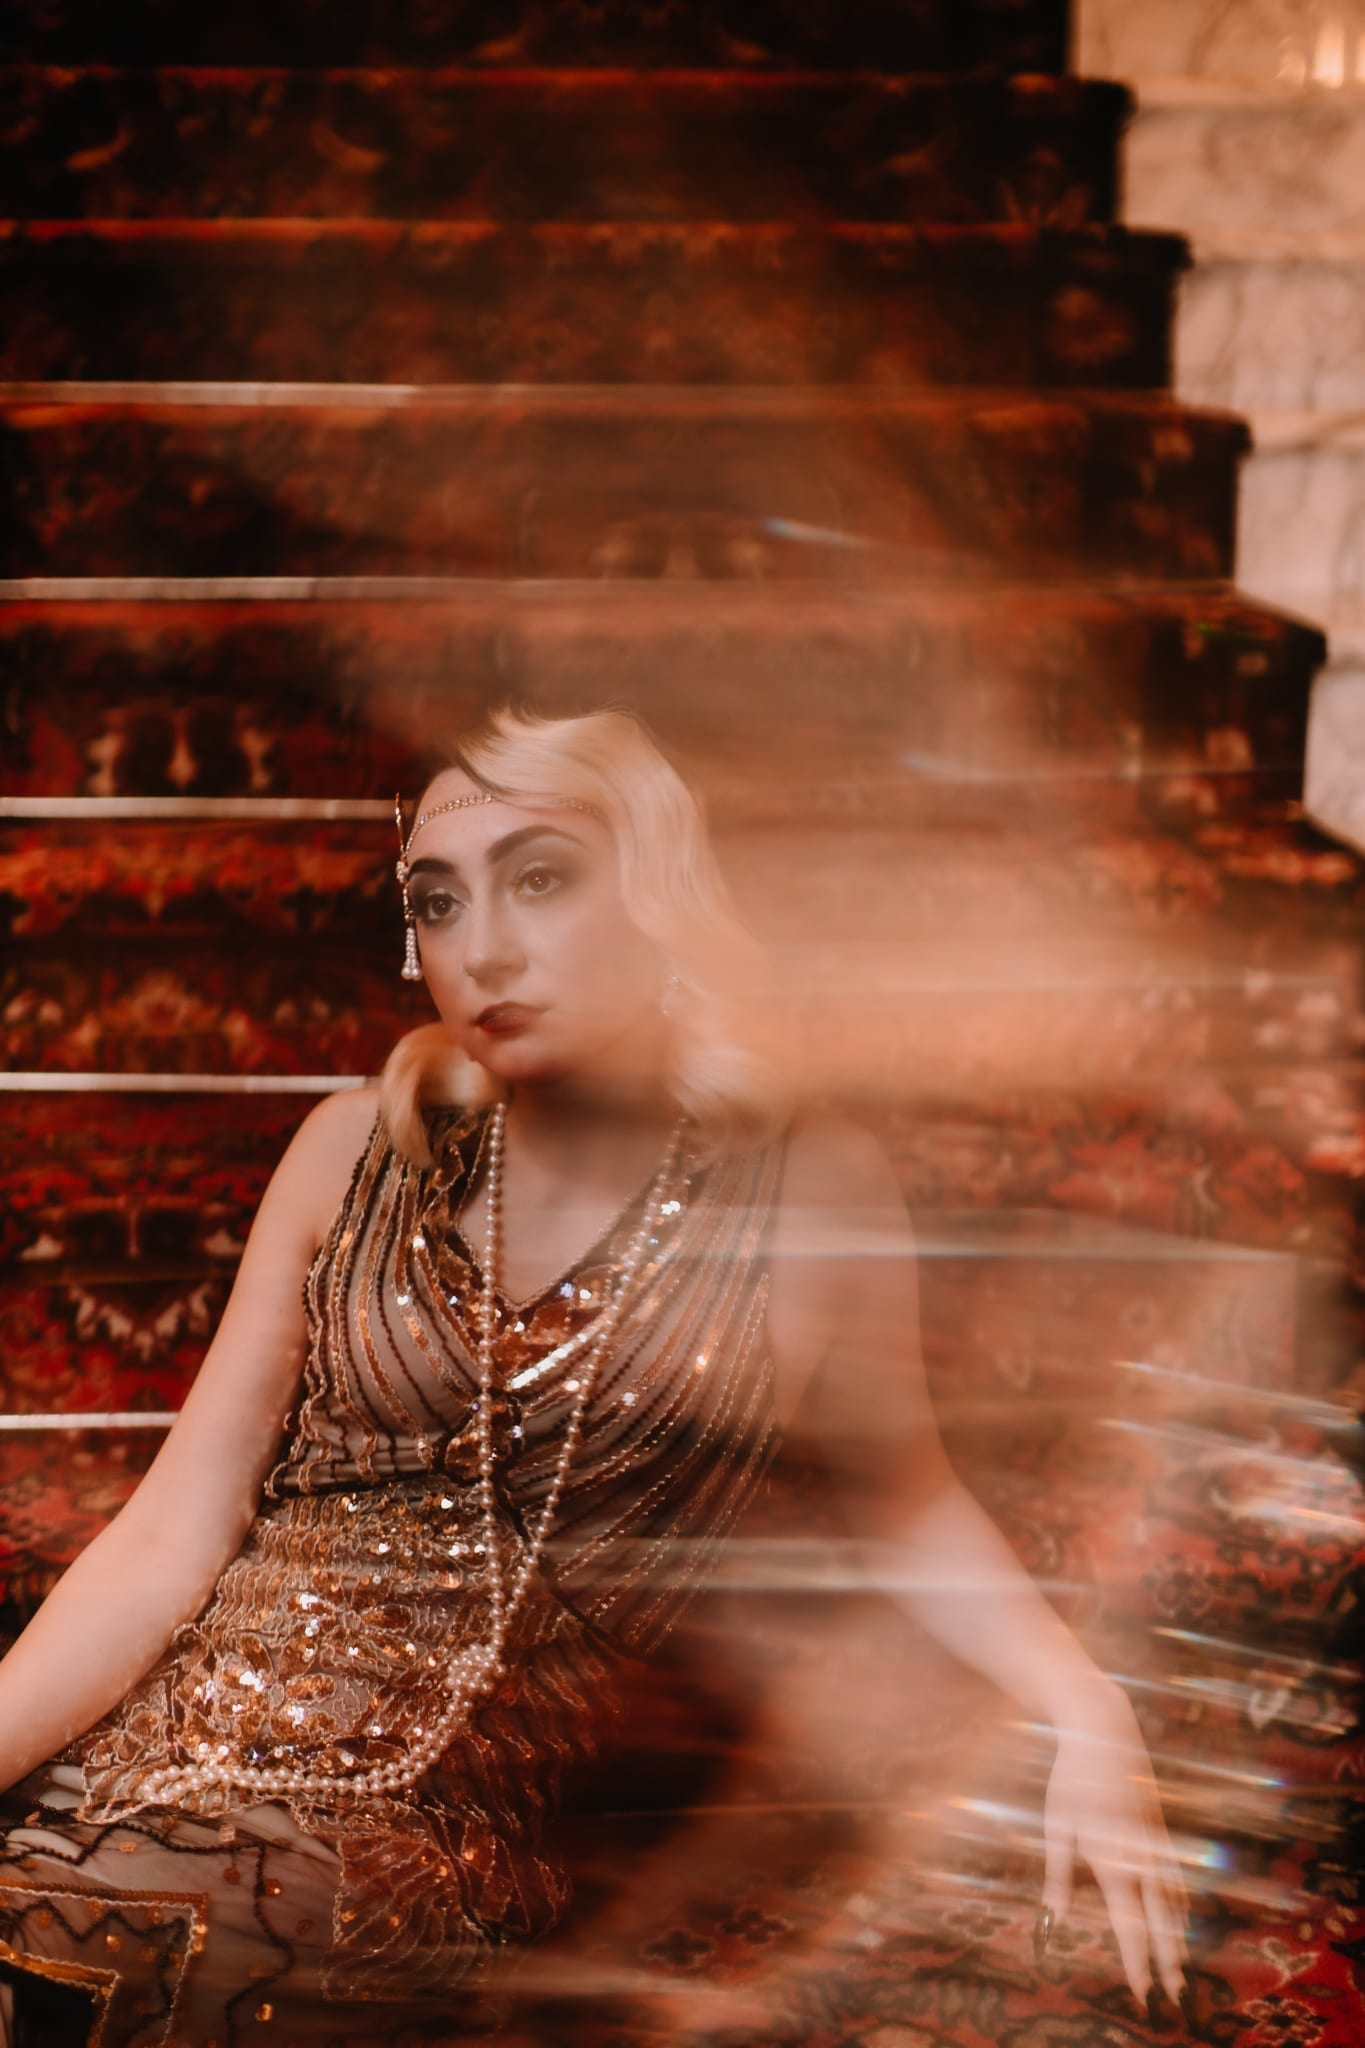 A BLONDE WOMEN IN 20'S THEMED DRESS WITH PEARLS ON A STAIR CASE IN ATLANTIC CITY SHOT BY MEERLOO PHOTOGRAPHY